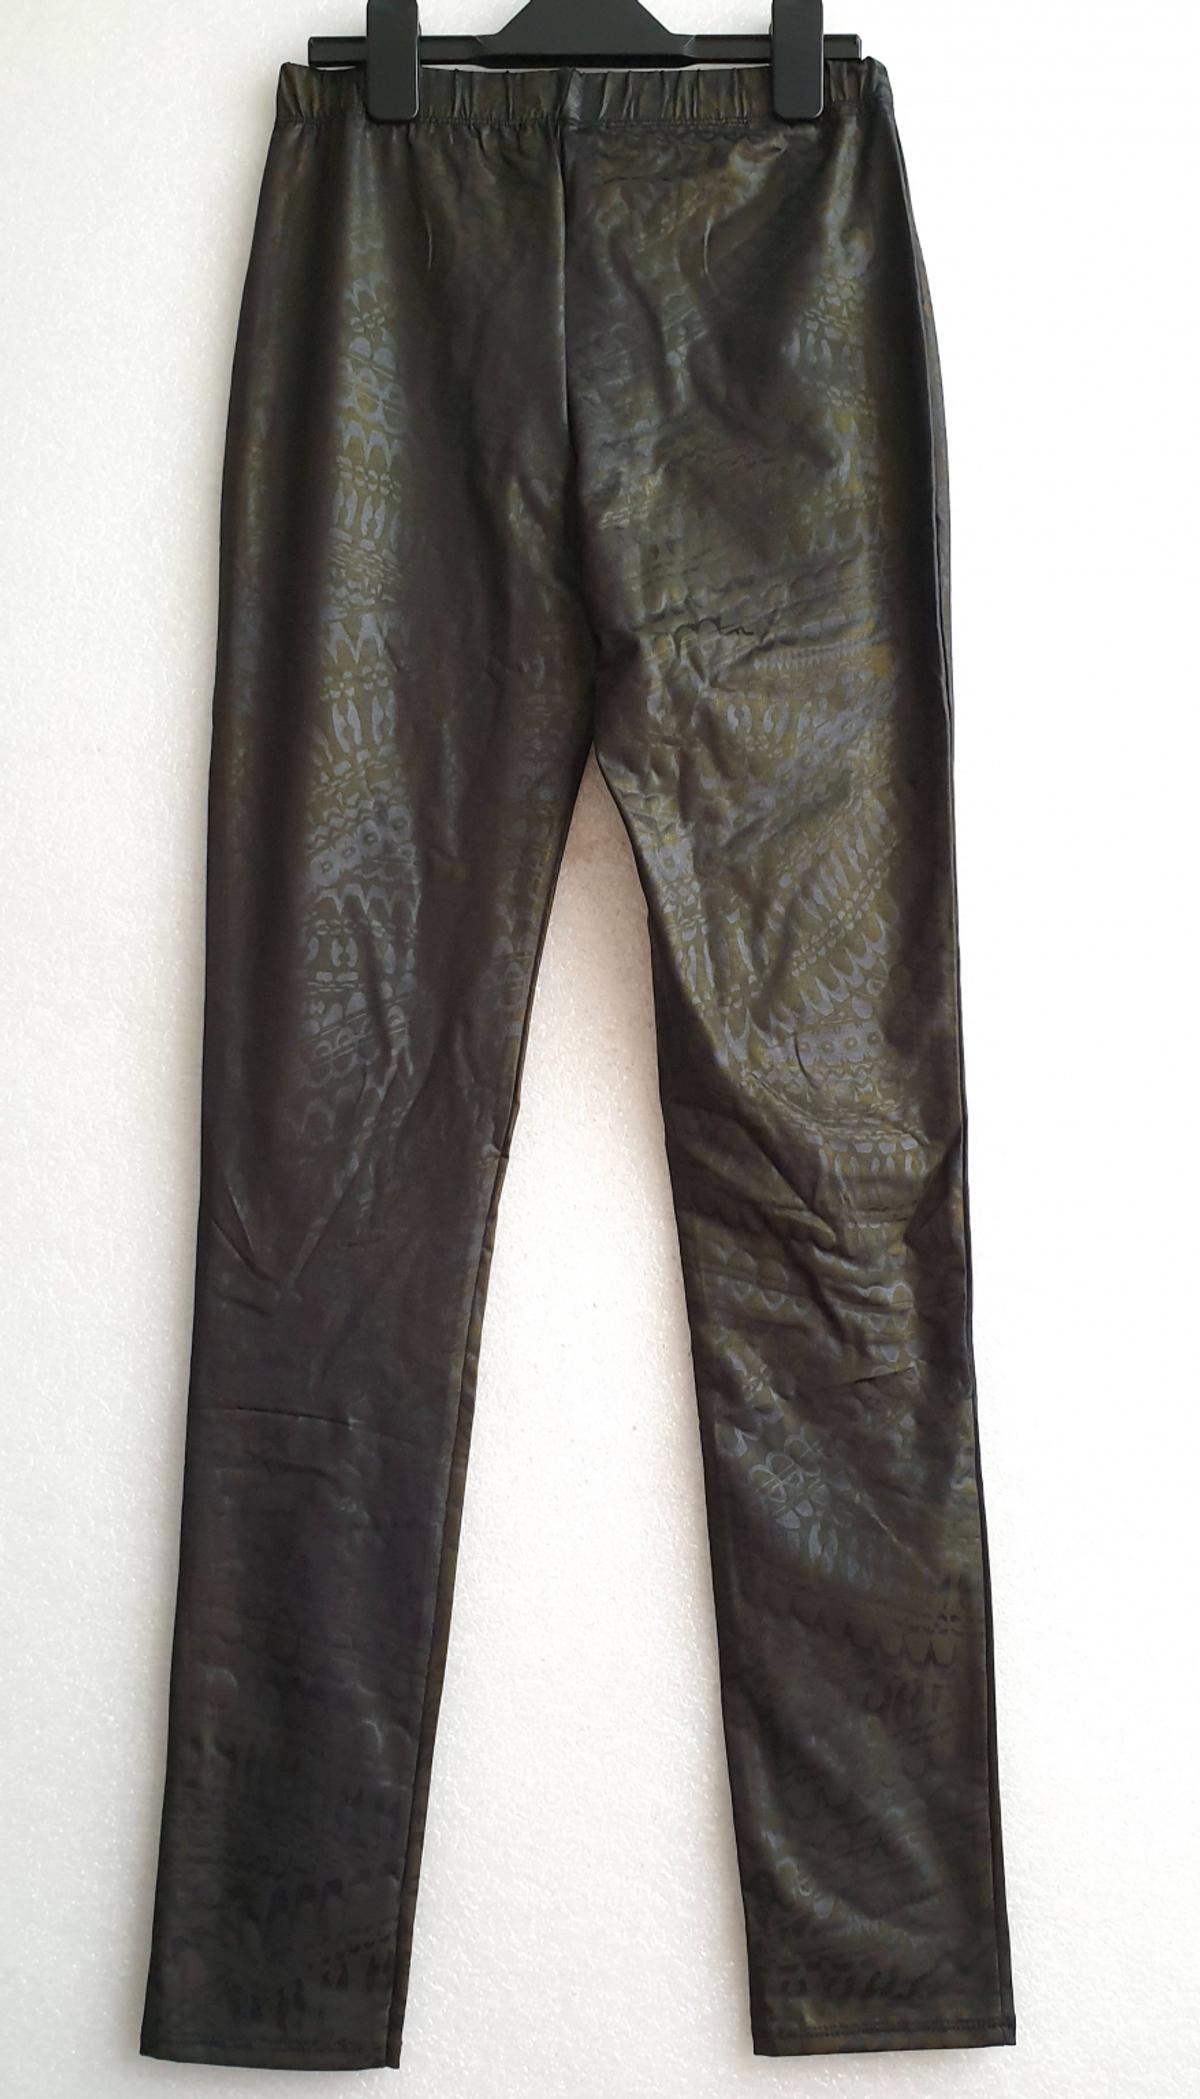 c047bdeea88491 Gold and black leggings aztec style.Matalan. in SE22 London for ...